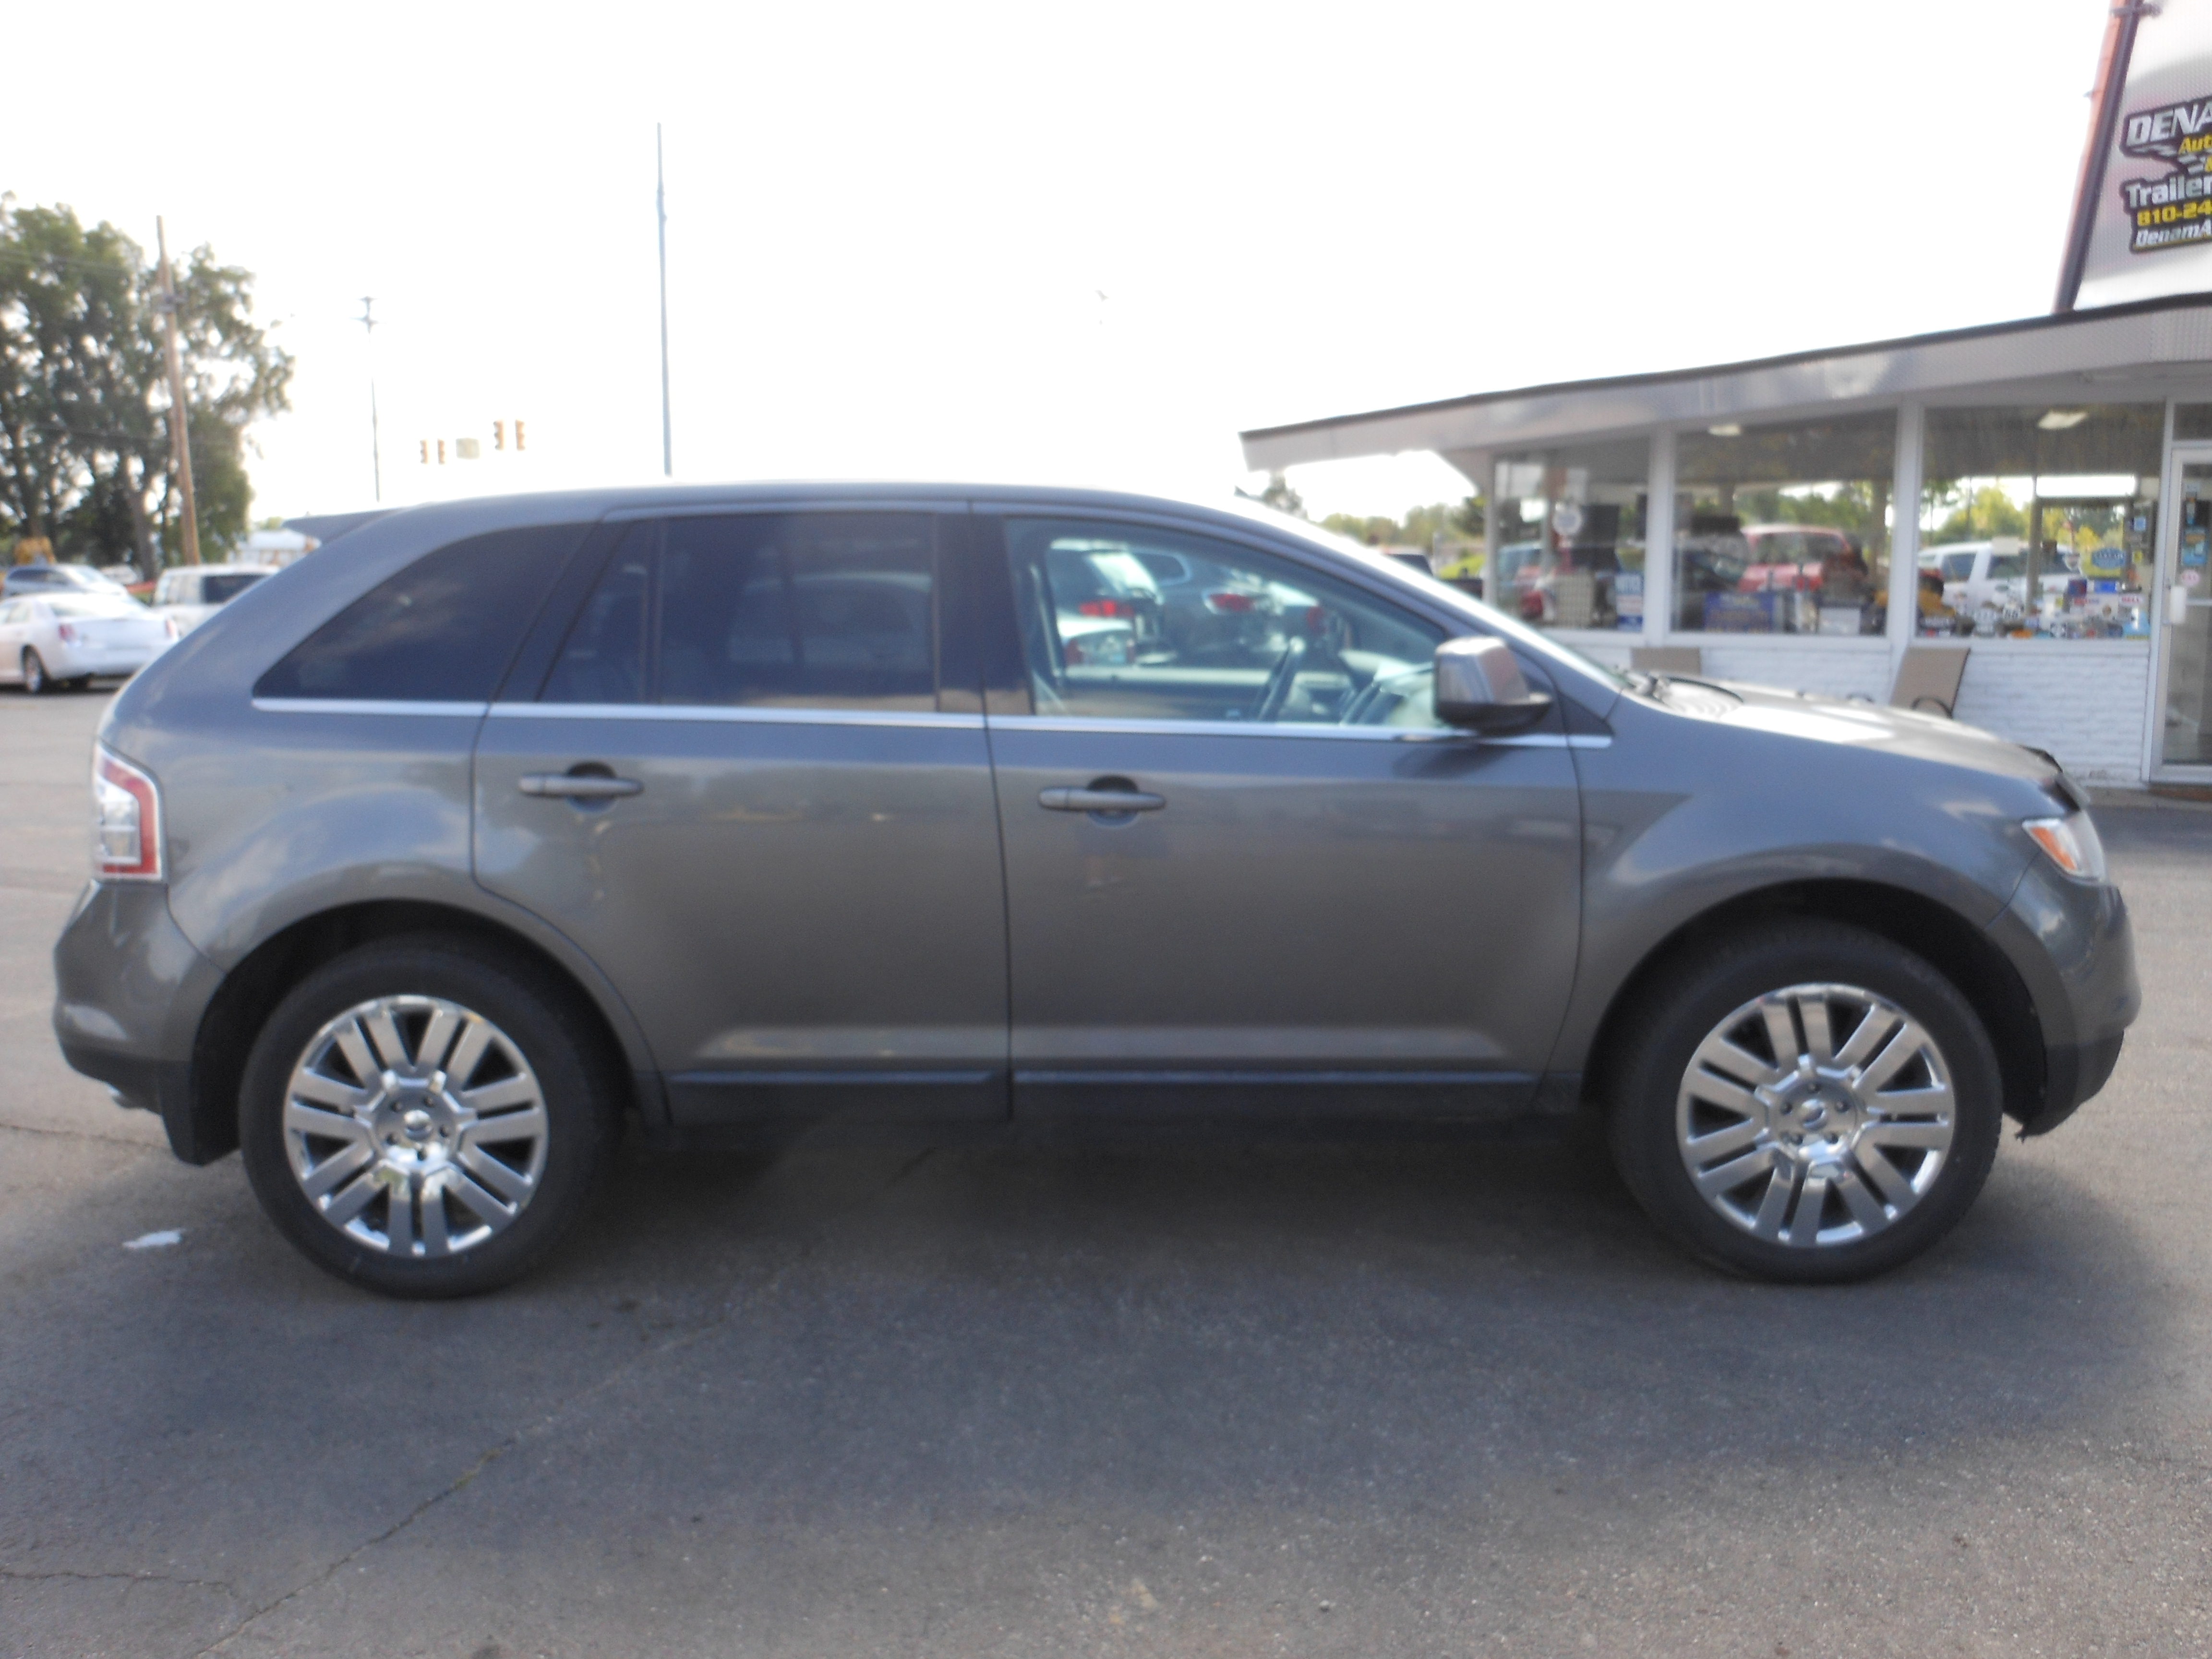 2010 ford edge limited 120k grey 4 denam auto trailer. Black Bedroom Furniture Sets. Home Design Ideas